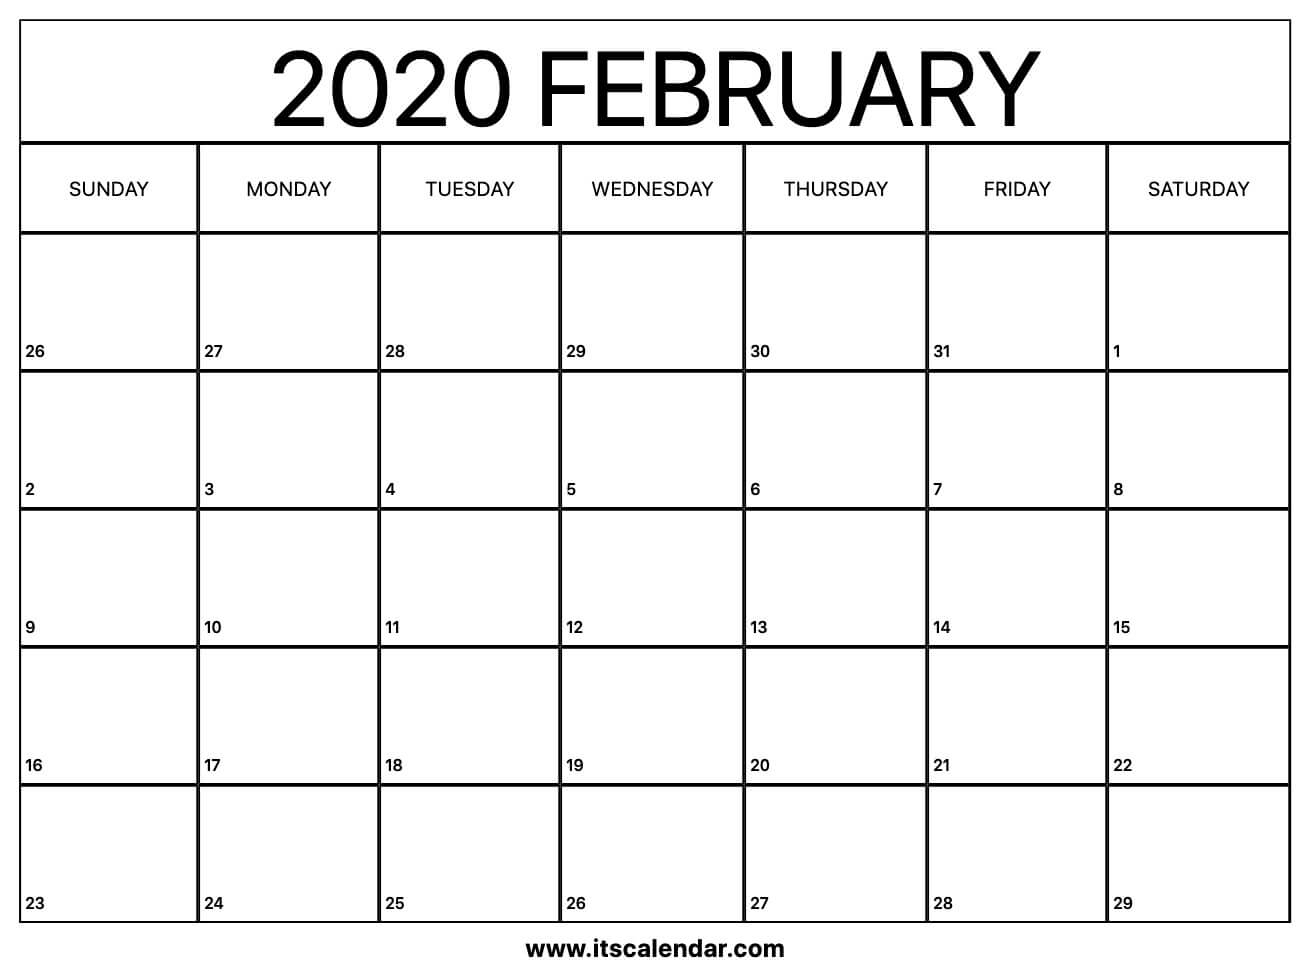 Free Printable February 2020 Calendar in Free Printable Nfl Schedule 2020 2020